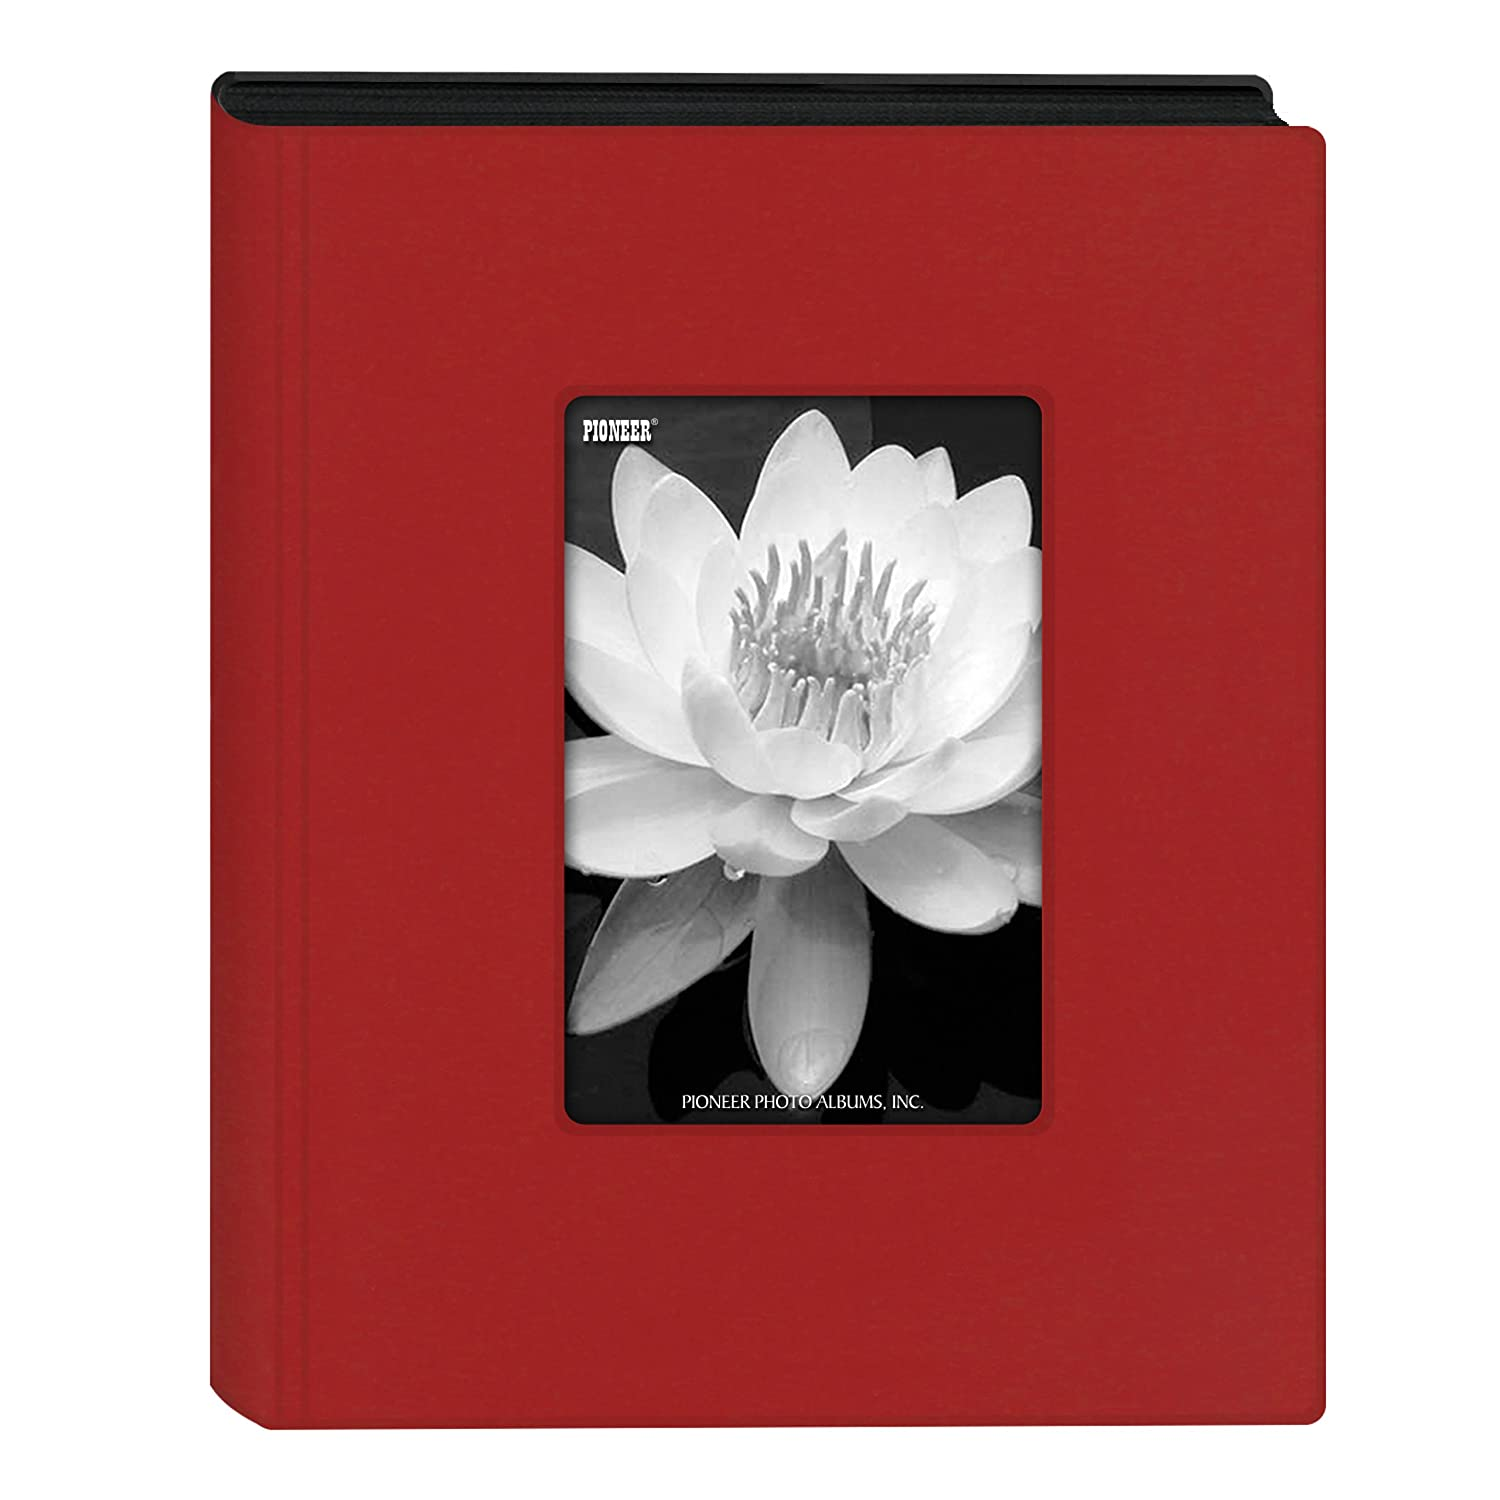 Pioneer Photo Albums Mini Frame Cover Photo Album, Holds 24 Photos, Red, 4 x 6 4 x 6 KZ-46/R